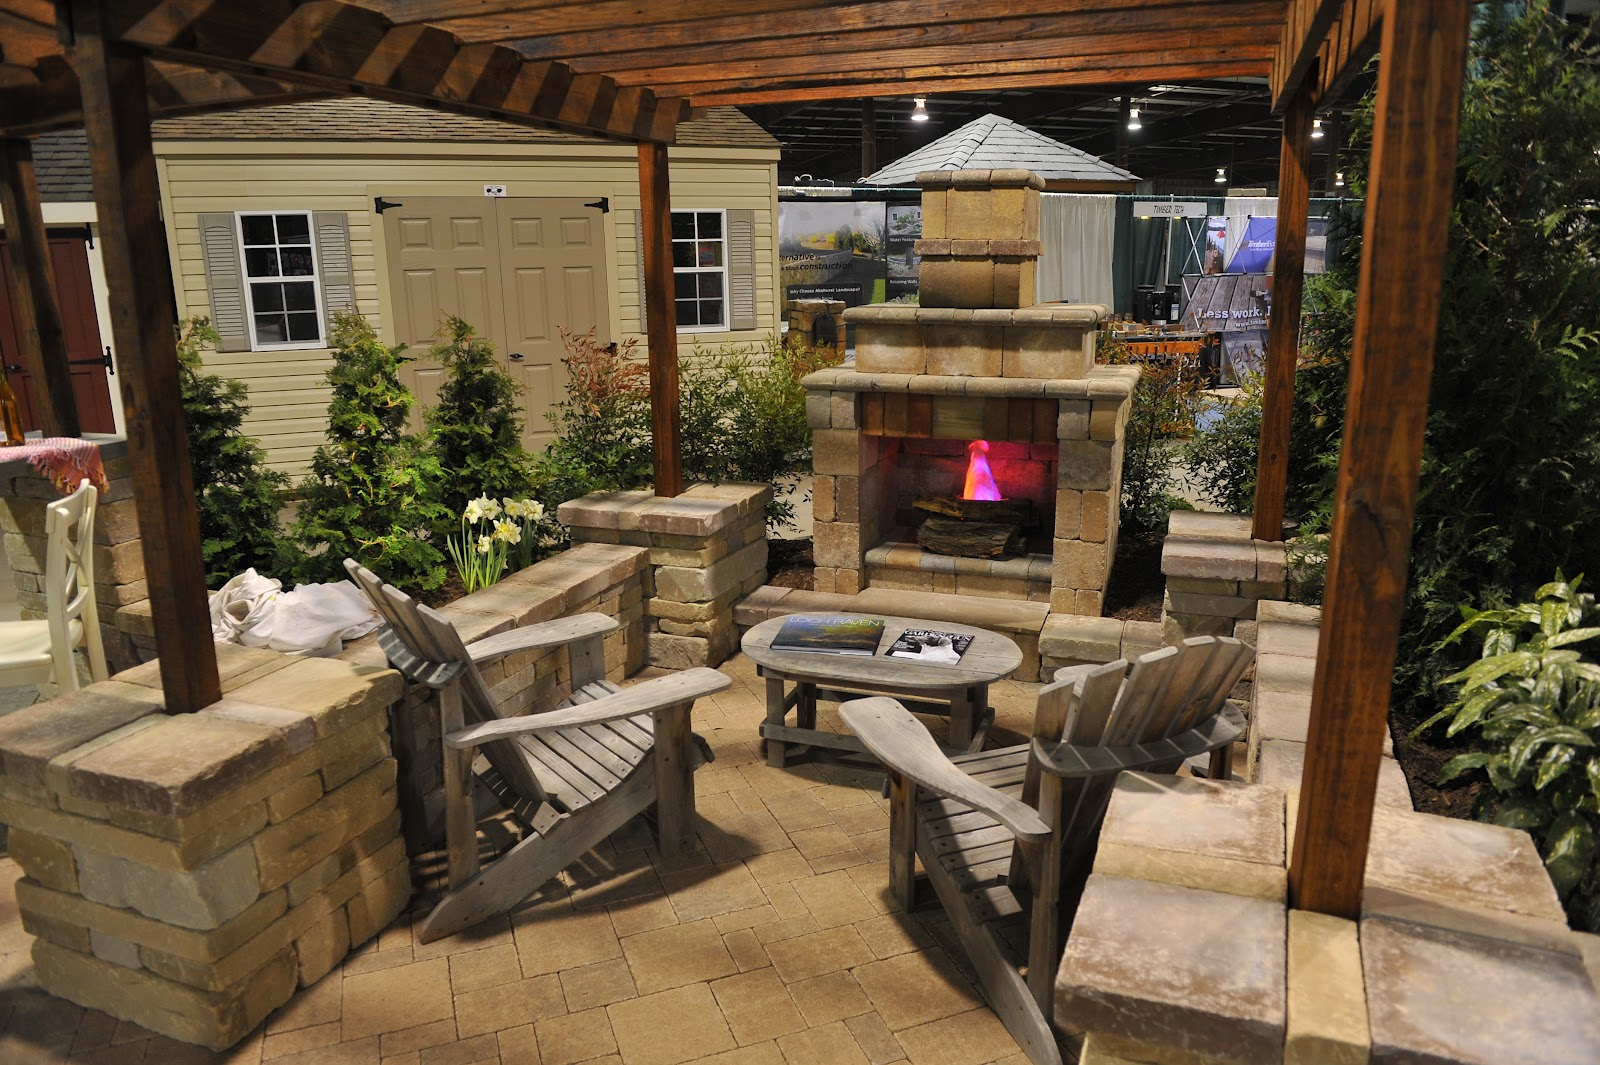 Best For Backyard Renovation Ideas Looking Backyards Small Gardens in 13 Some of the Coolest Tricks of How to Improve Backyard Renovation Ideas